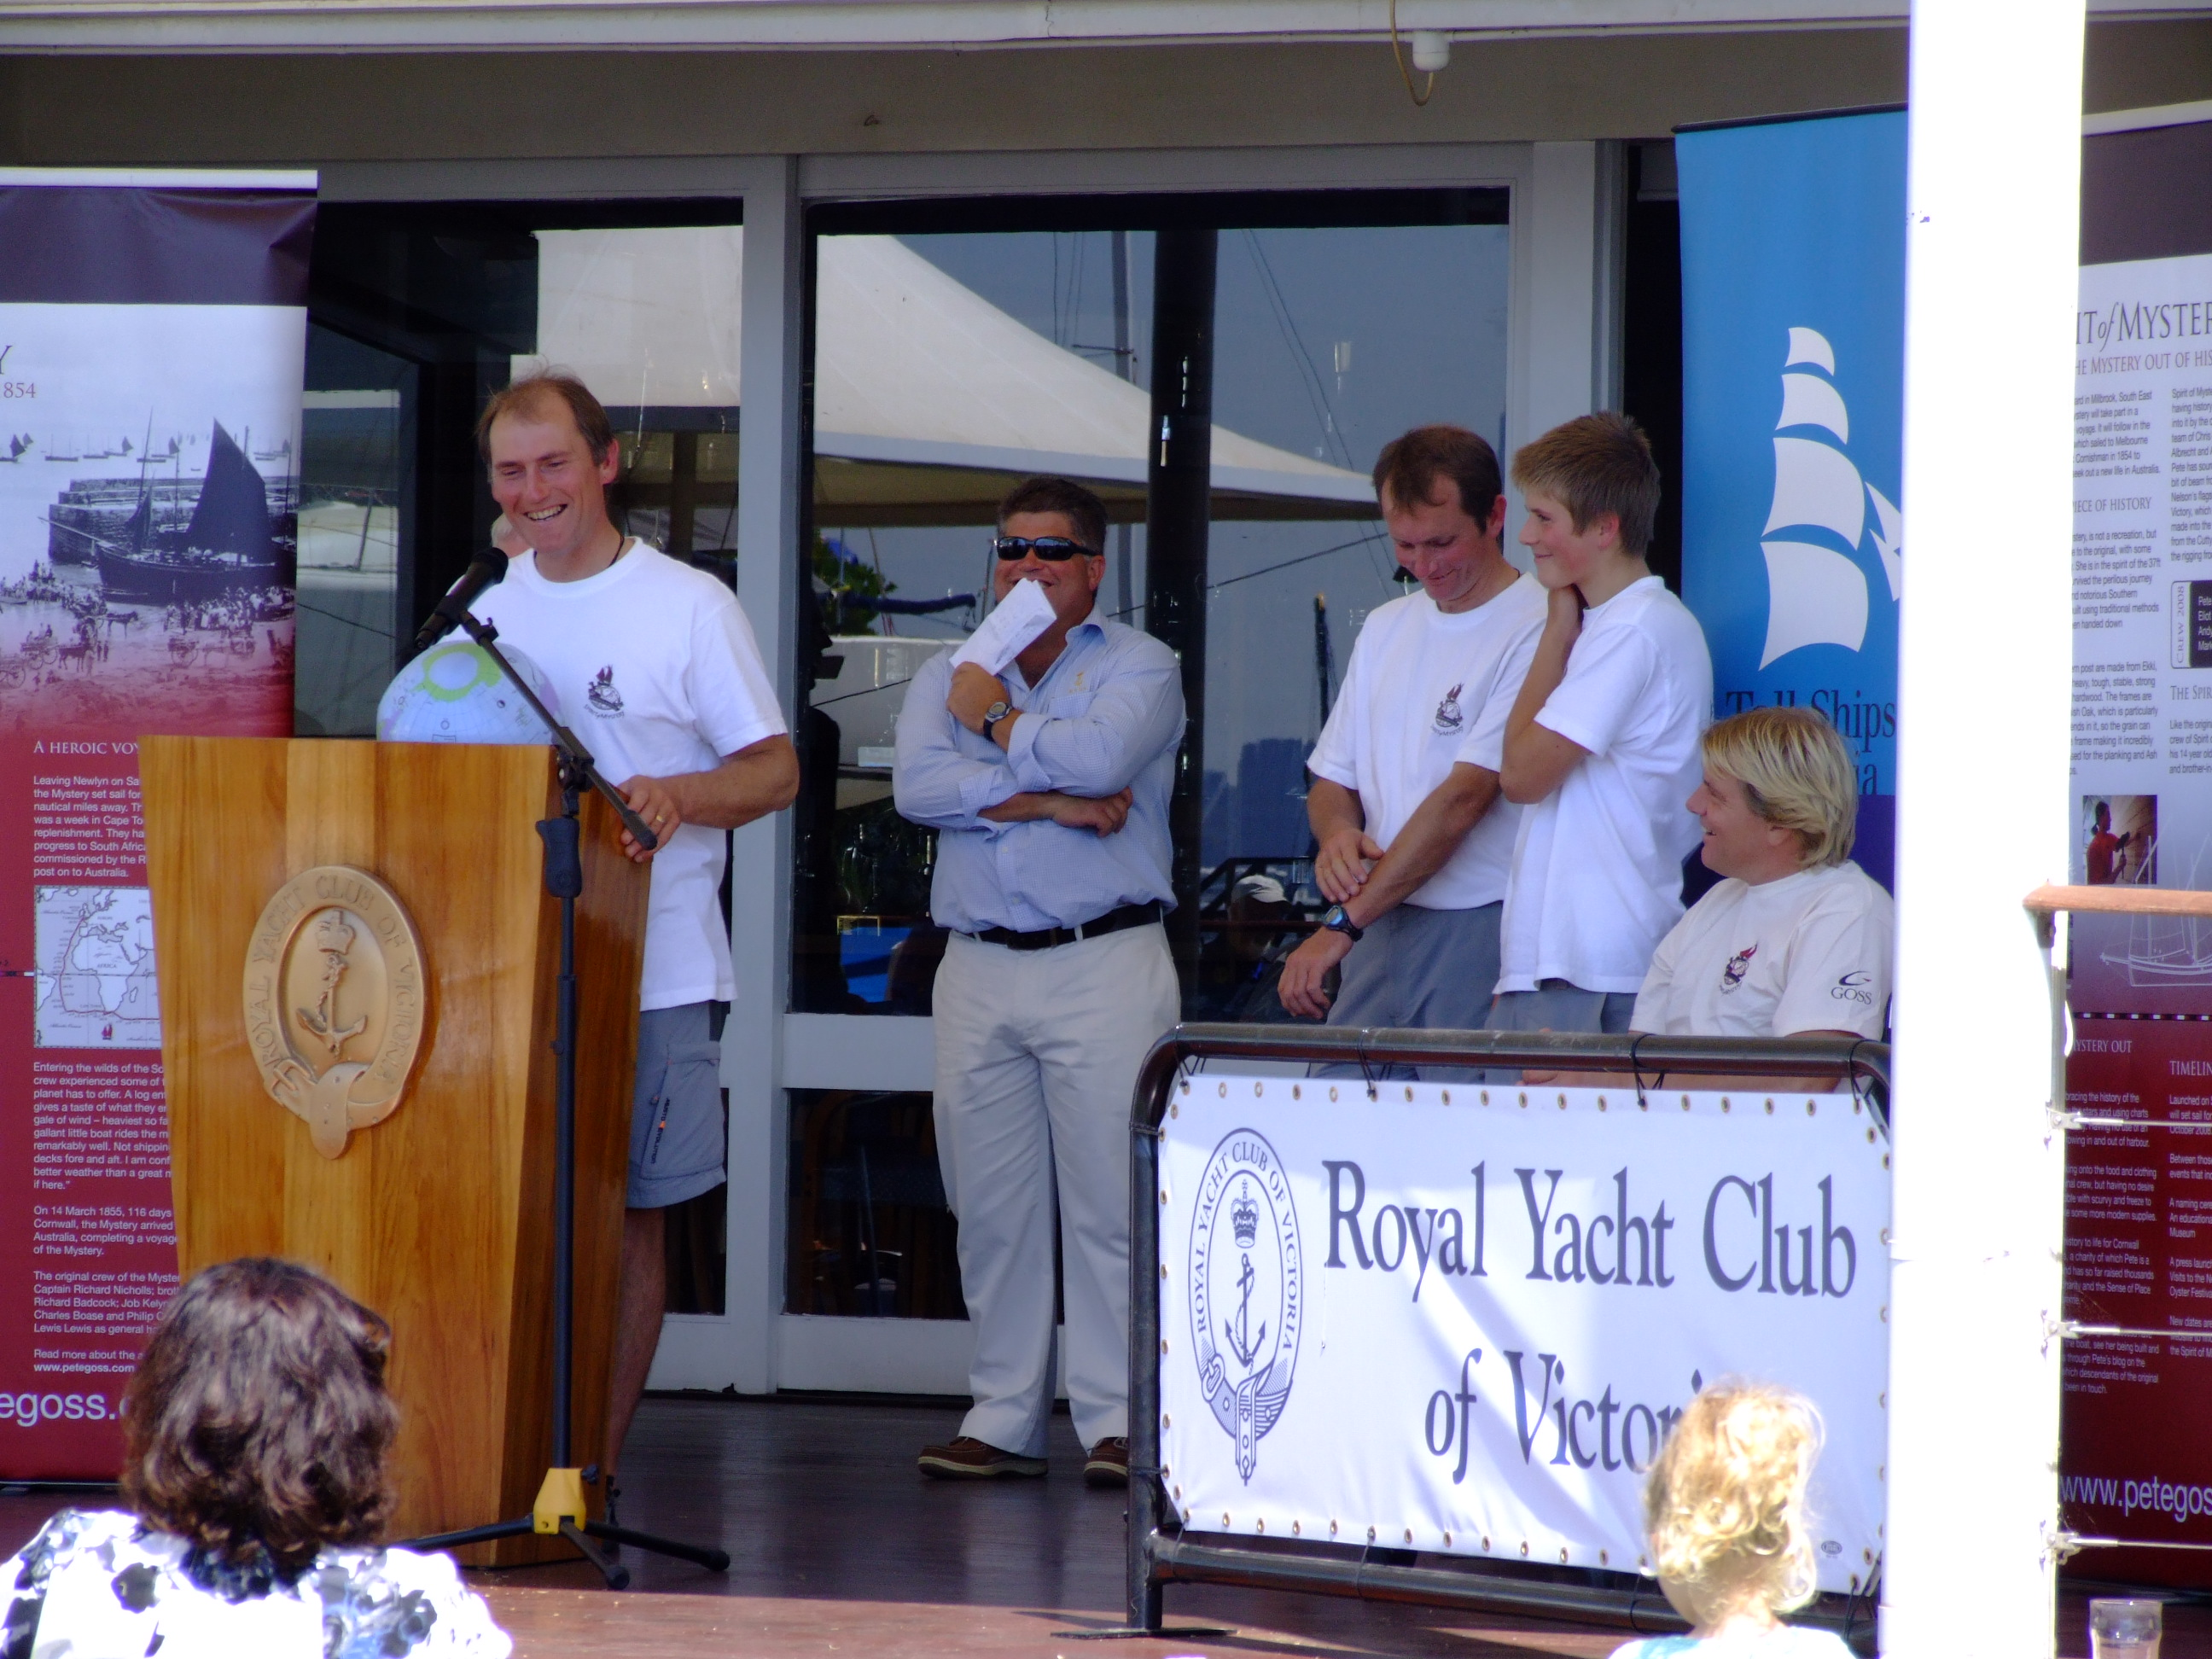 Pete Goss Speaking at Royal Victoria Yacht Club